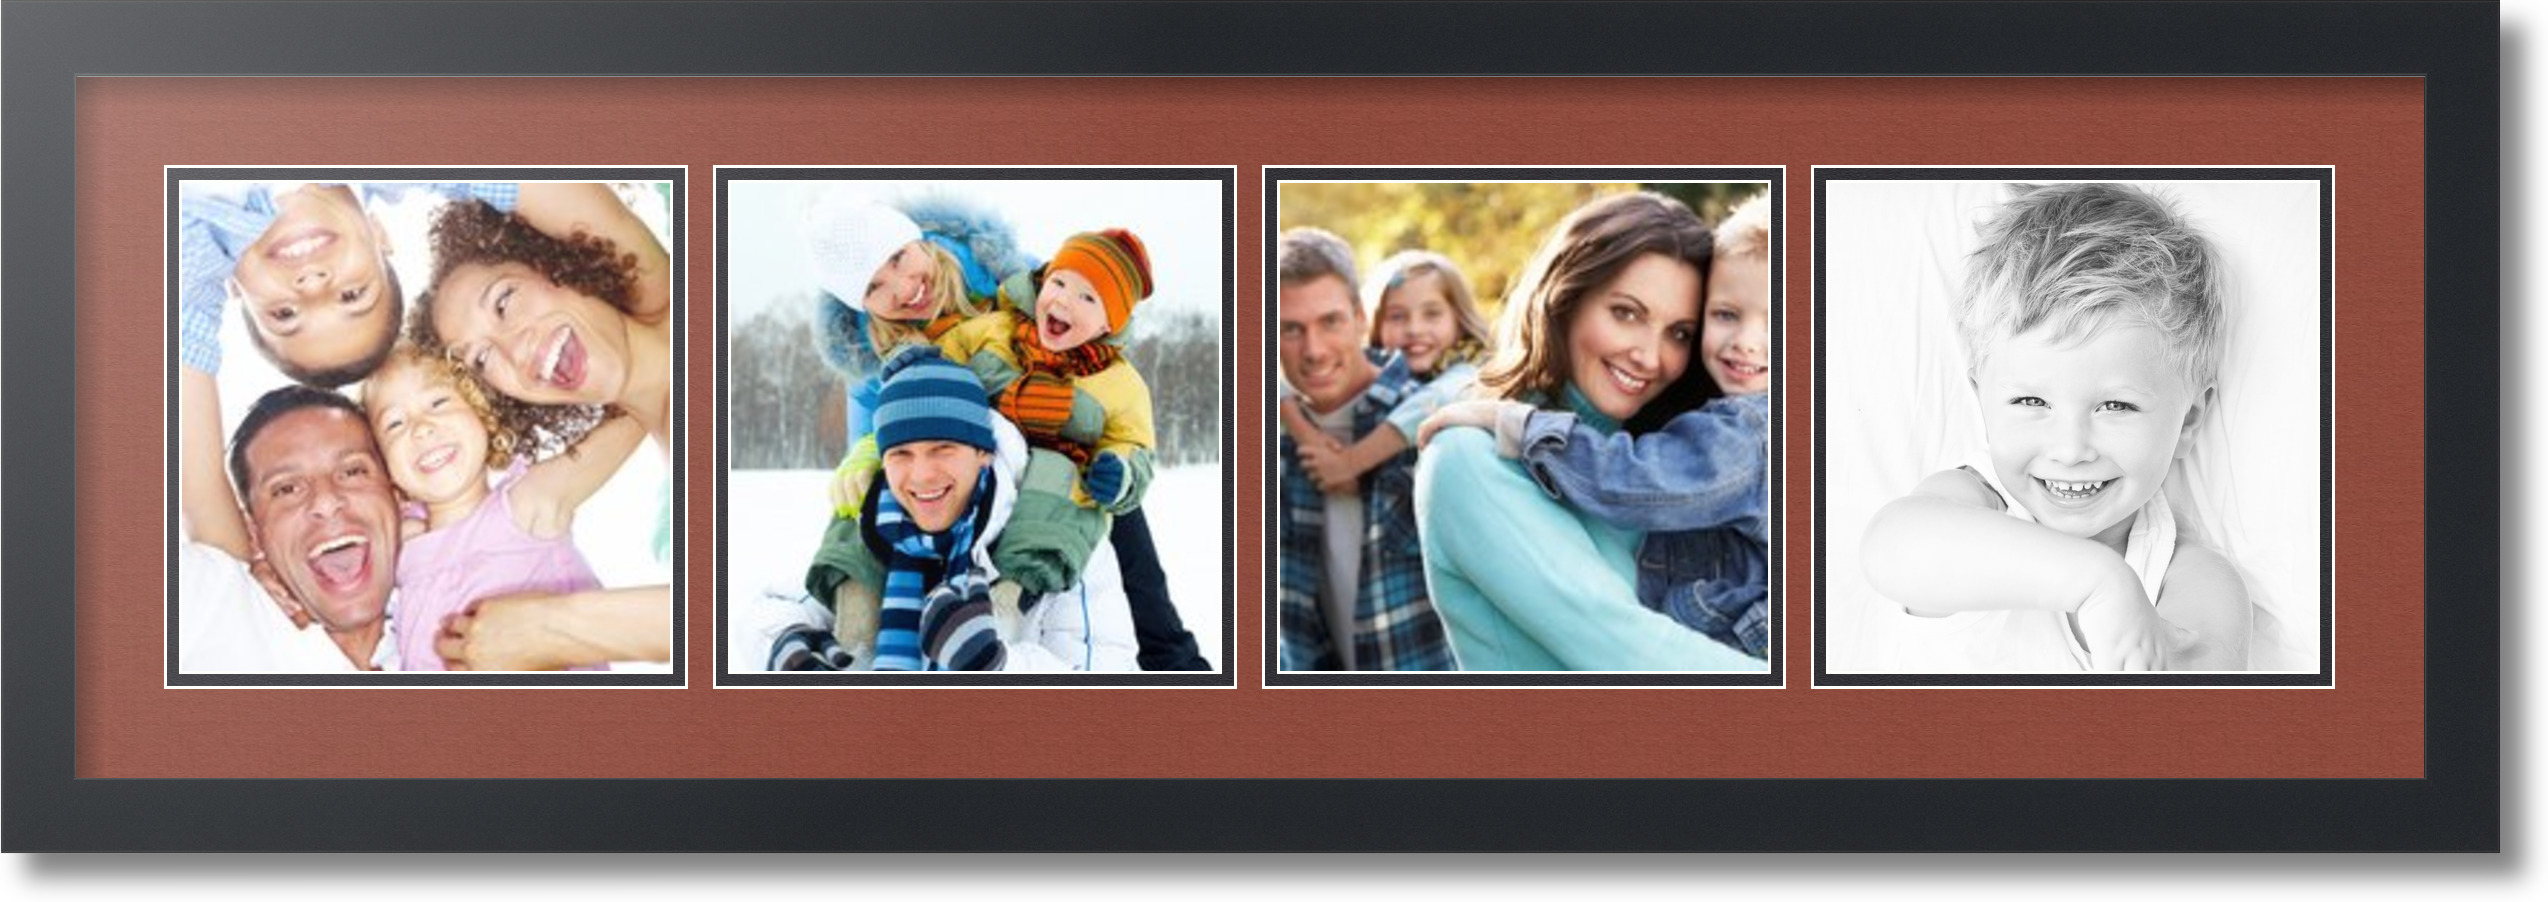 Satin Black Collage Picture Frame With 4 8x8 Opening S